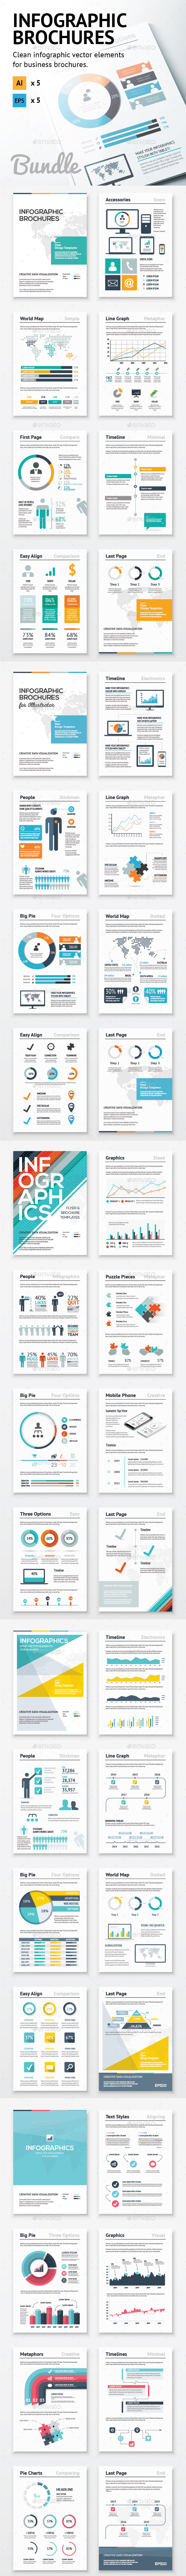 Infographic Brochure Elements Bundle - Infographics